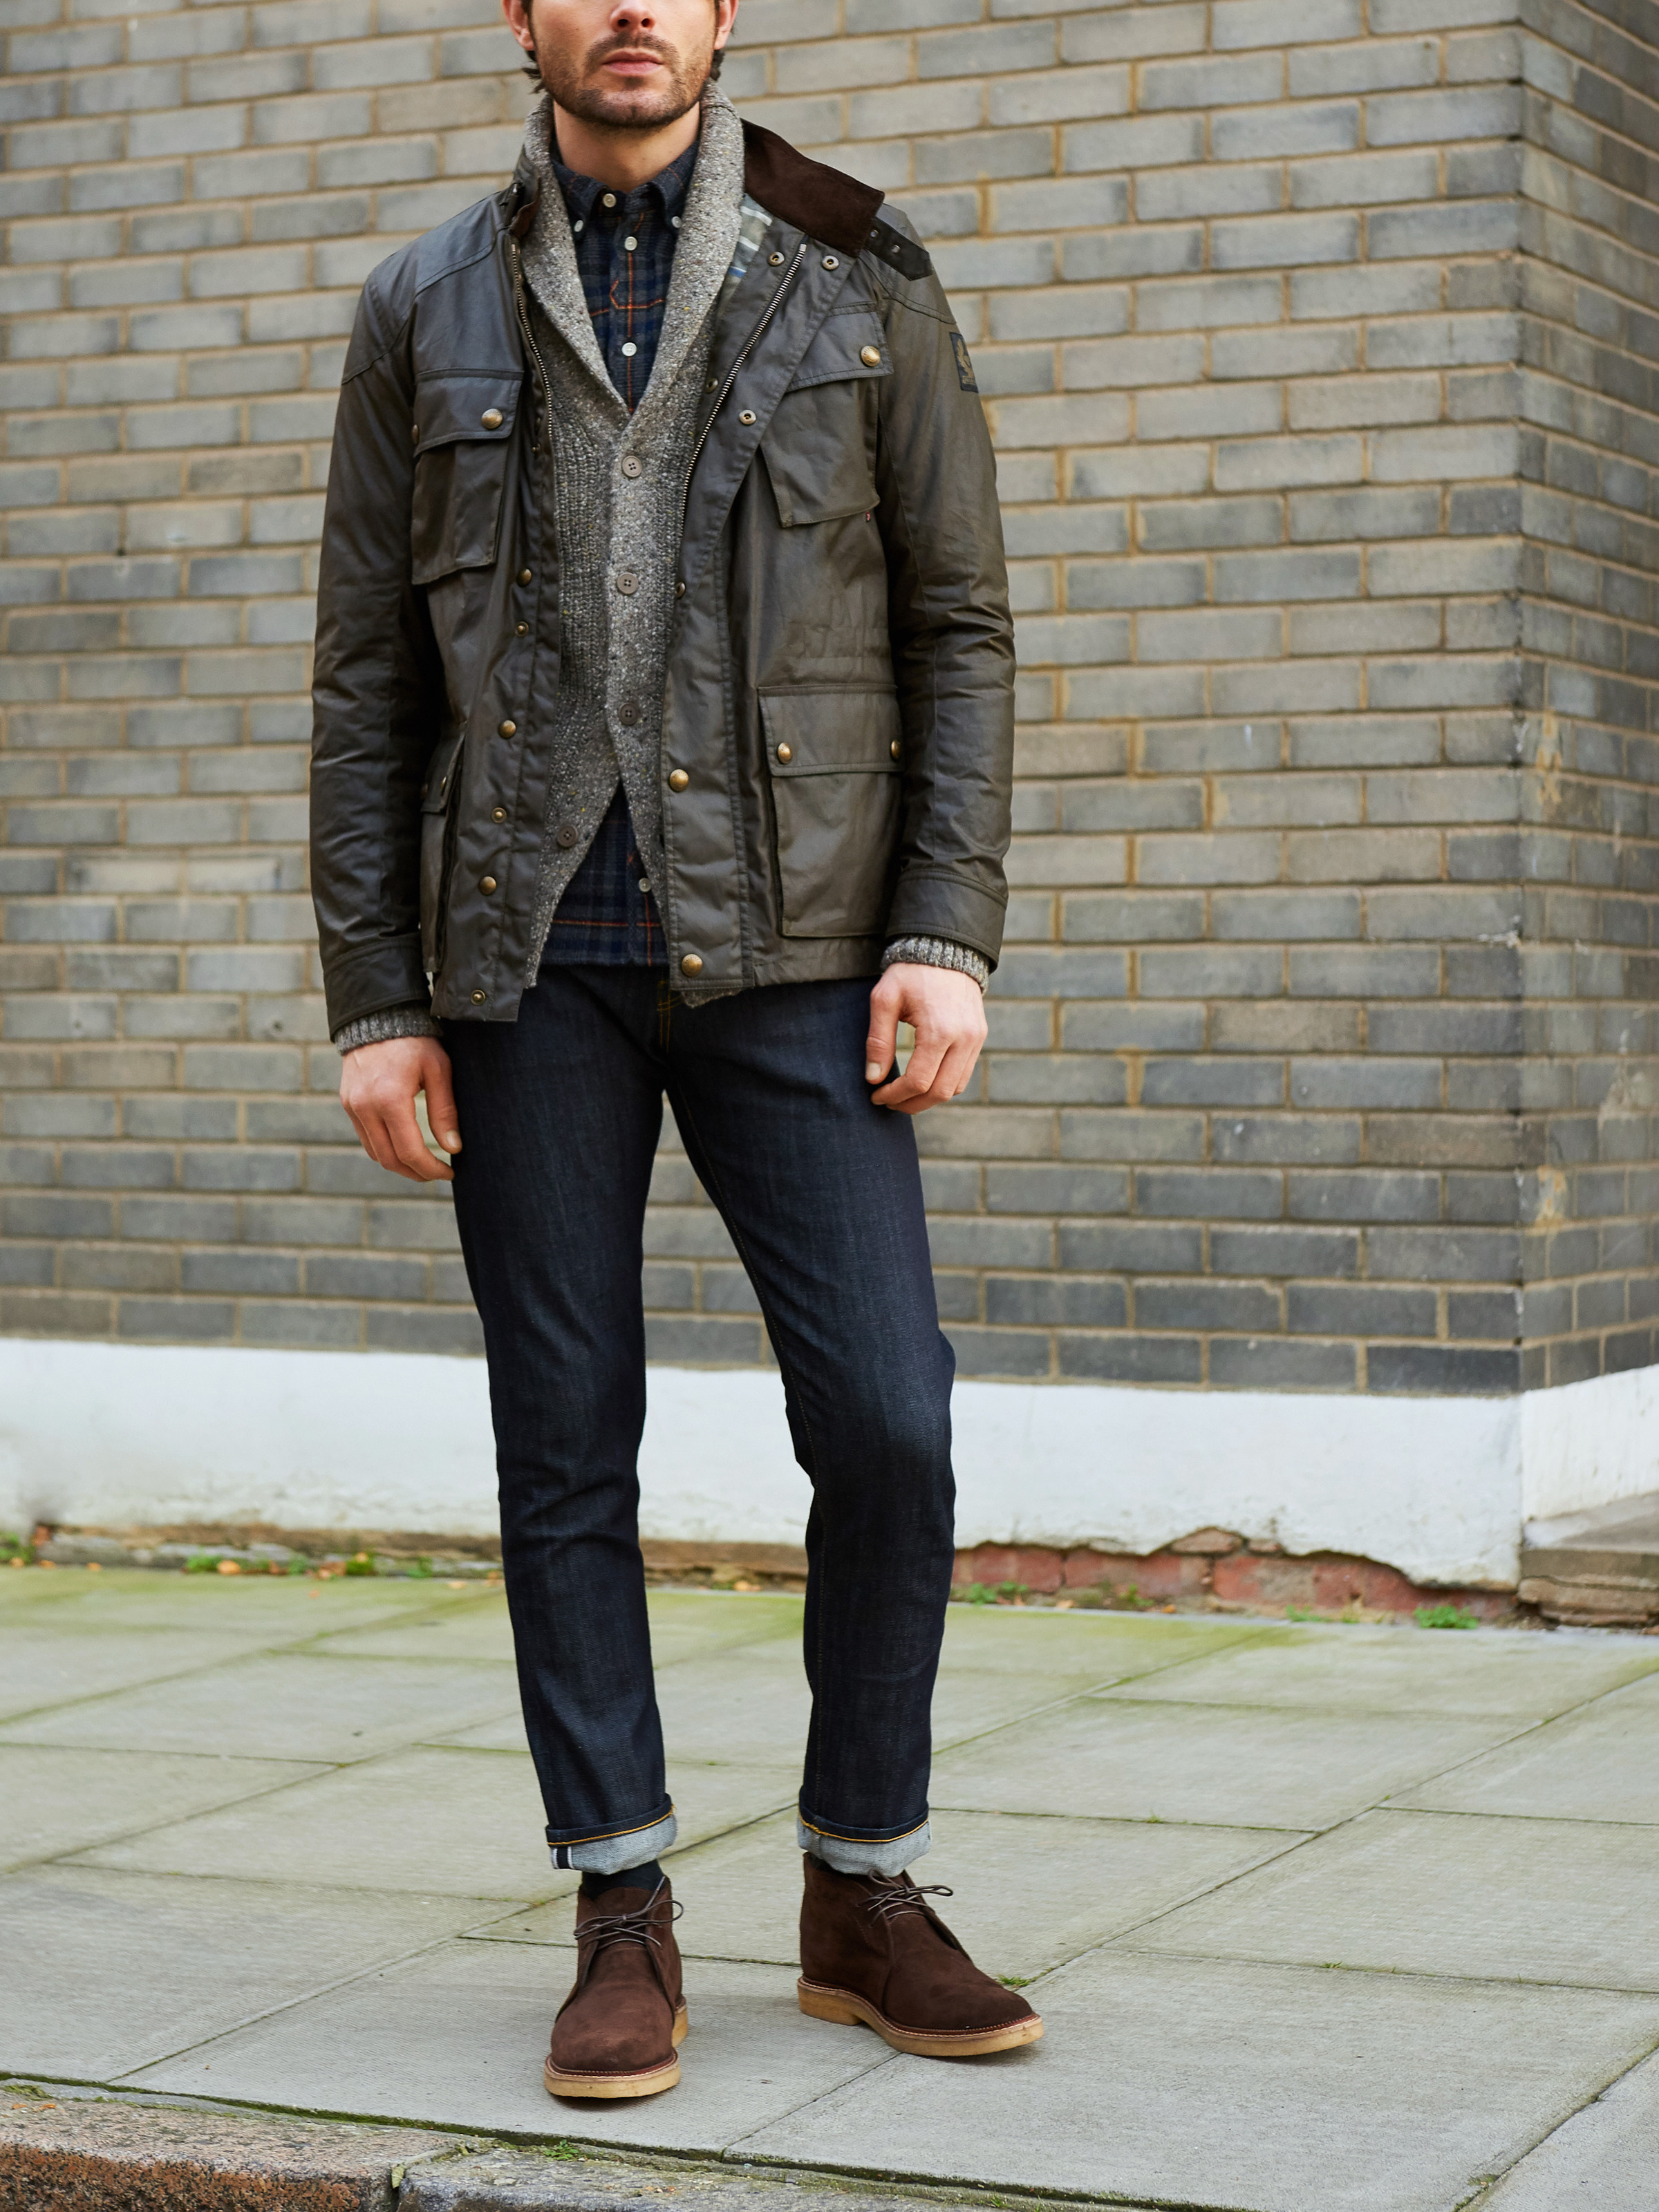 Men's outfit idea for 2021 with field jacket, grey shawl cardigan, bold plaid shirt, dark blue jeans, brown desert boots. Suitable for autumn and winter.